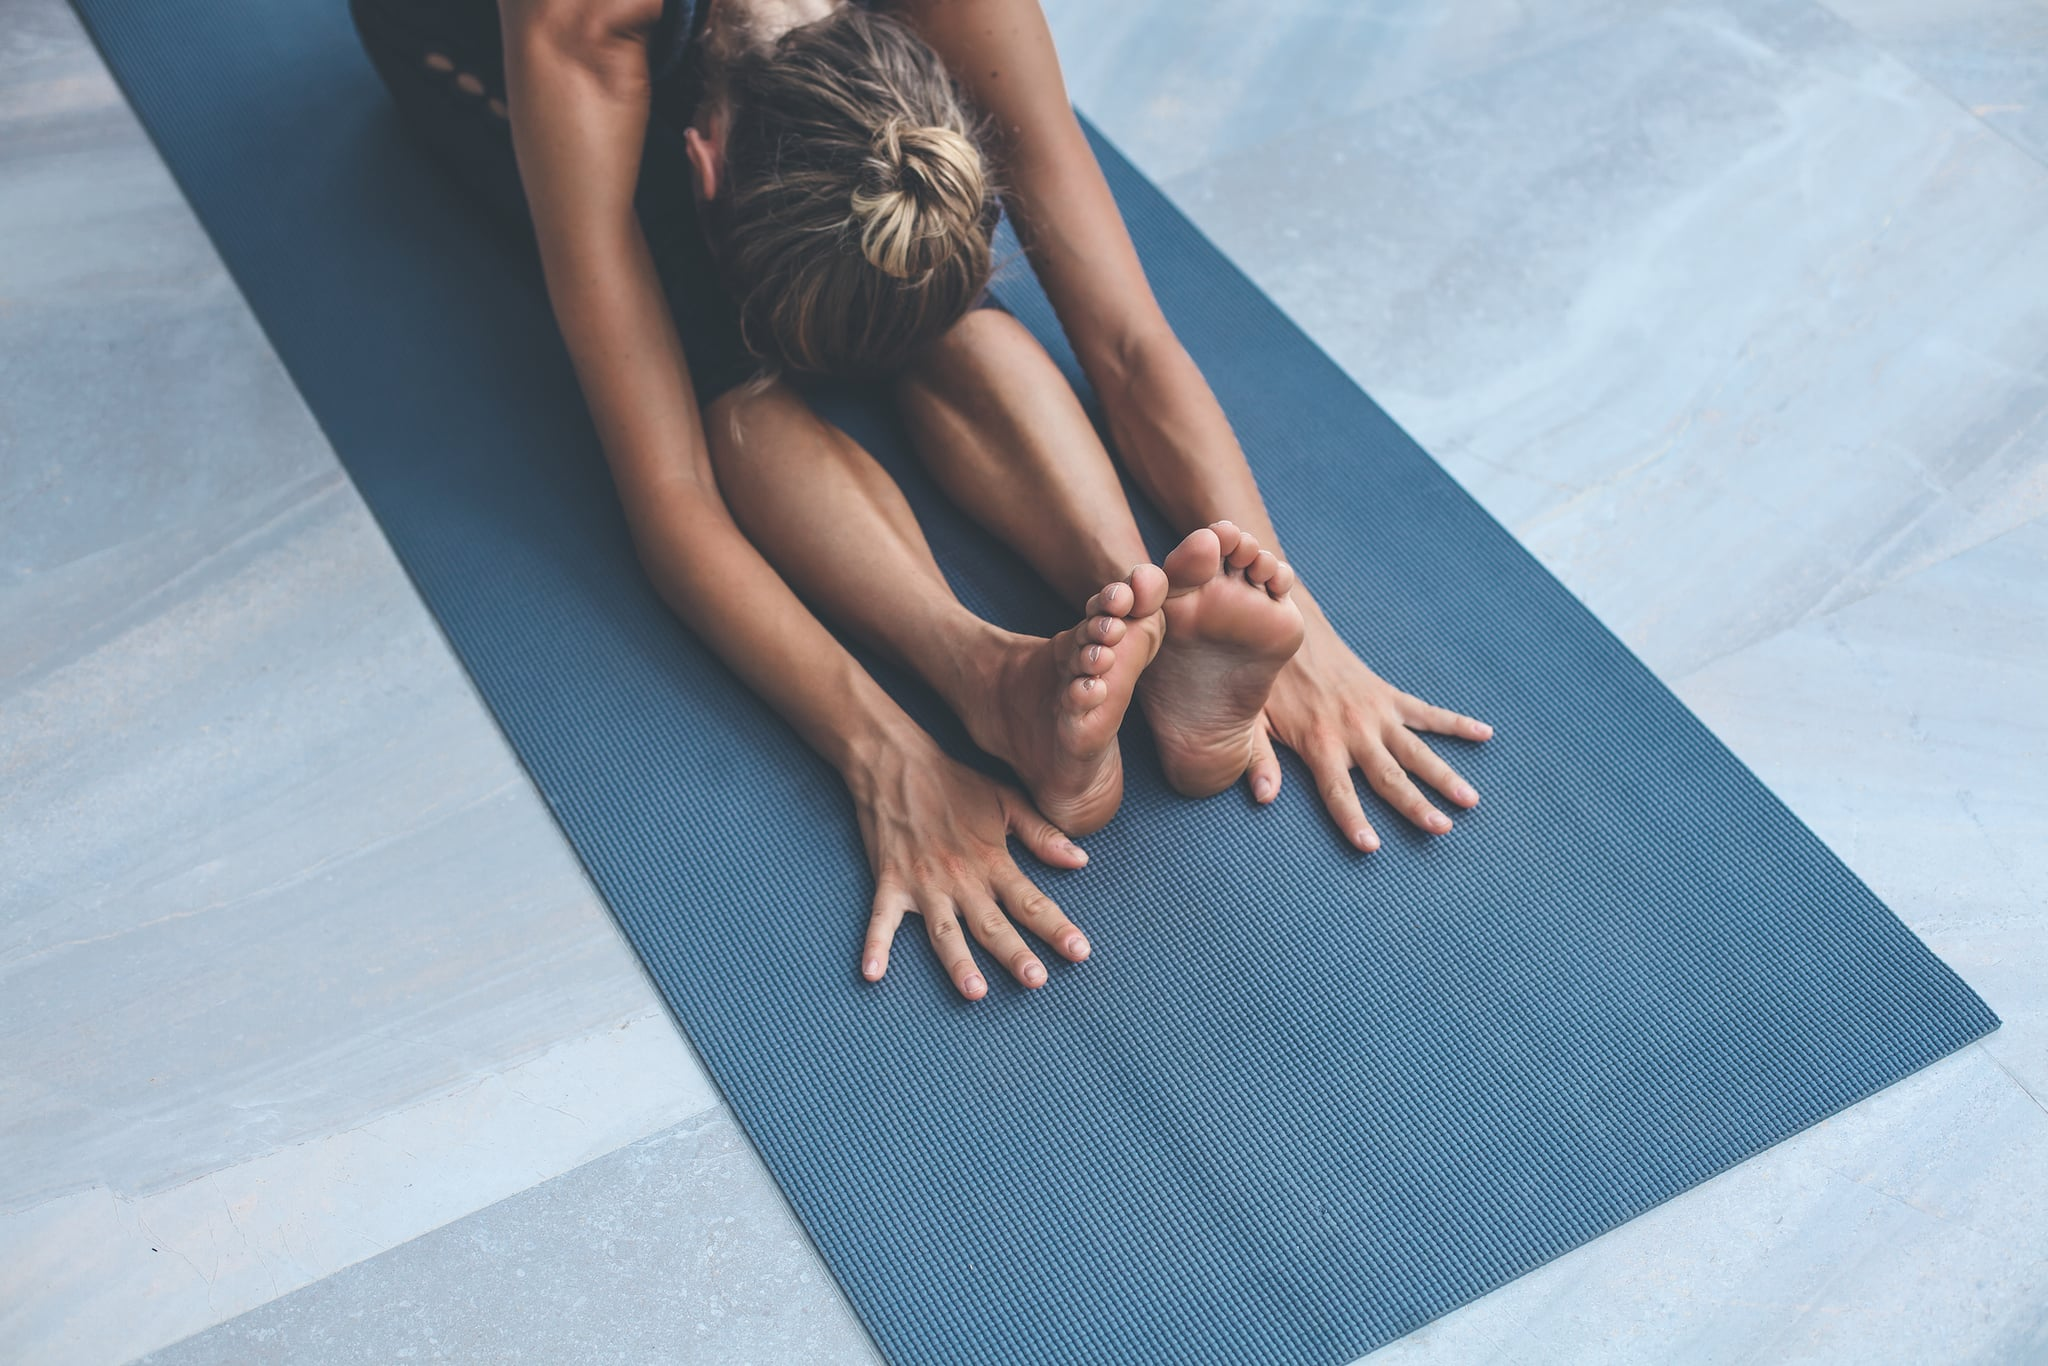 Yoga exercises at home